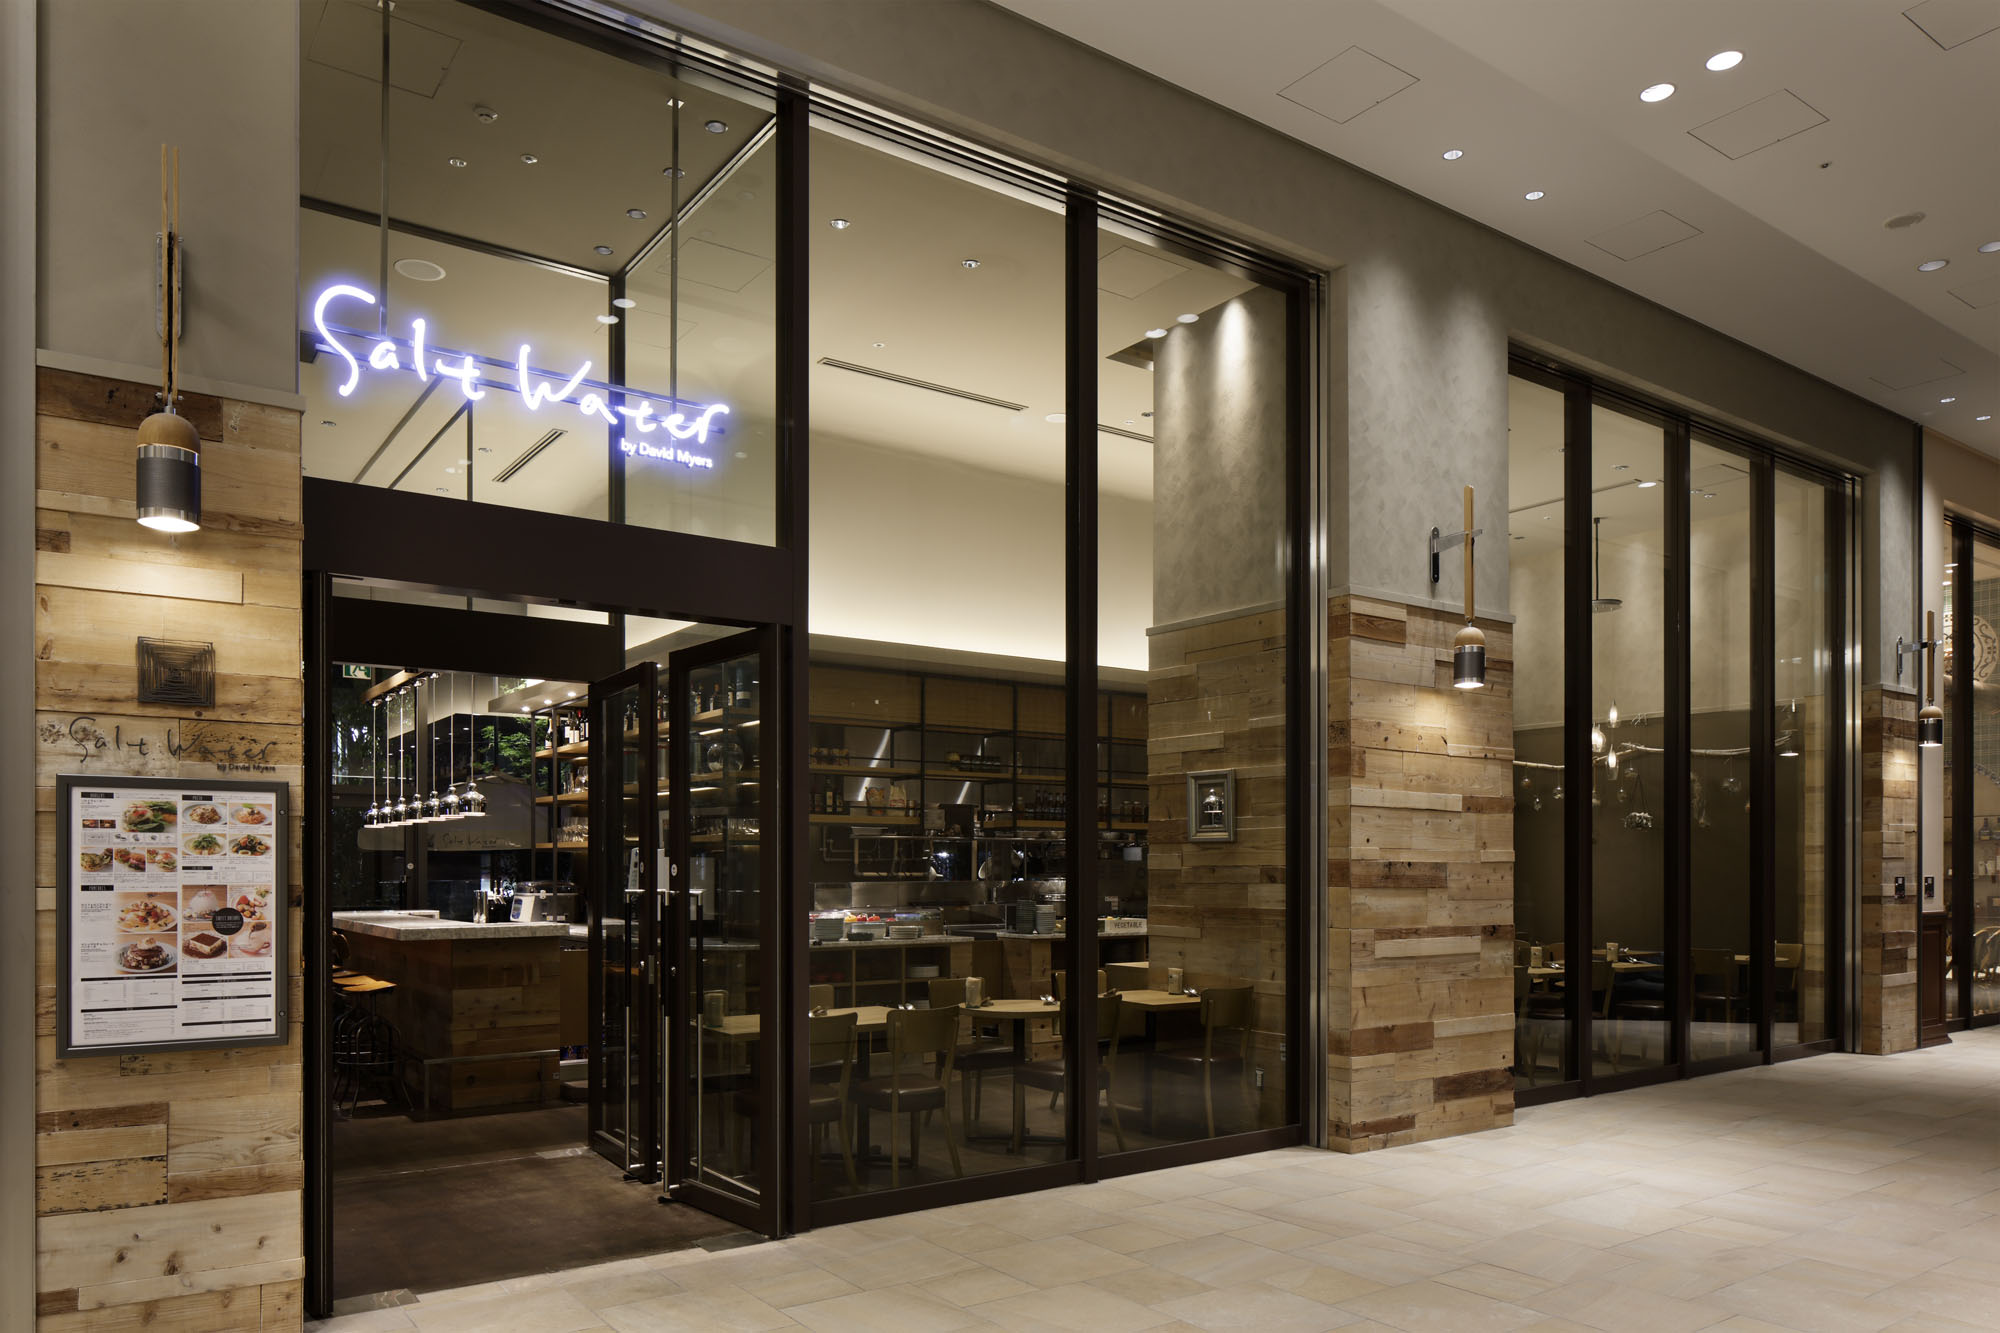 Salt Water Kitchen by Chef David Myers | Nagoya